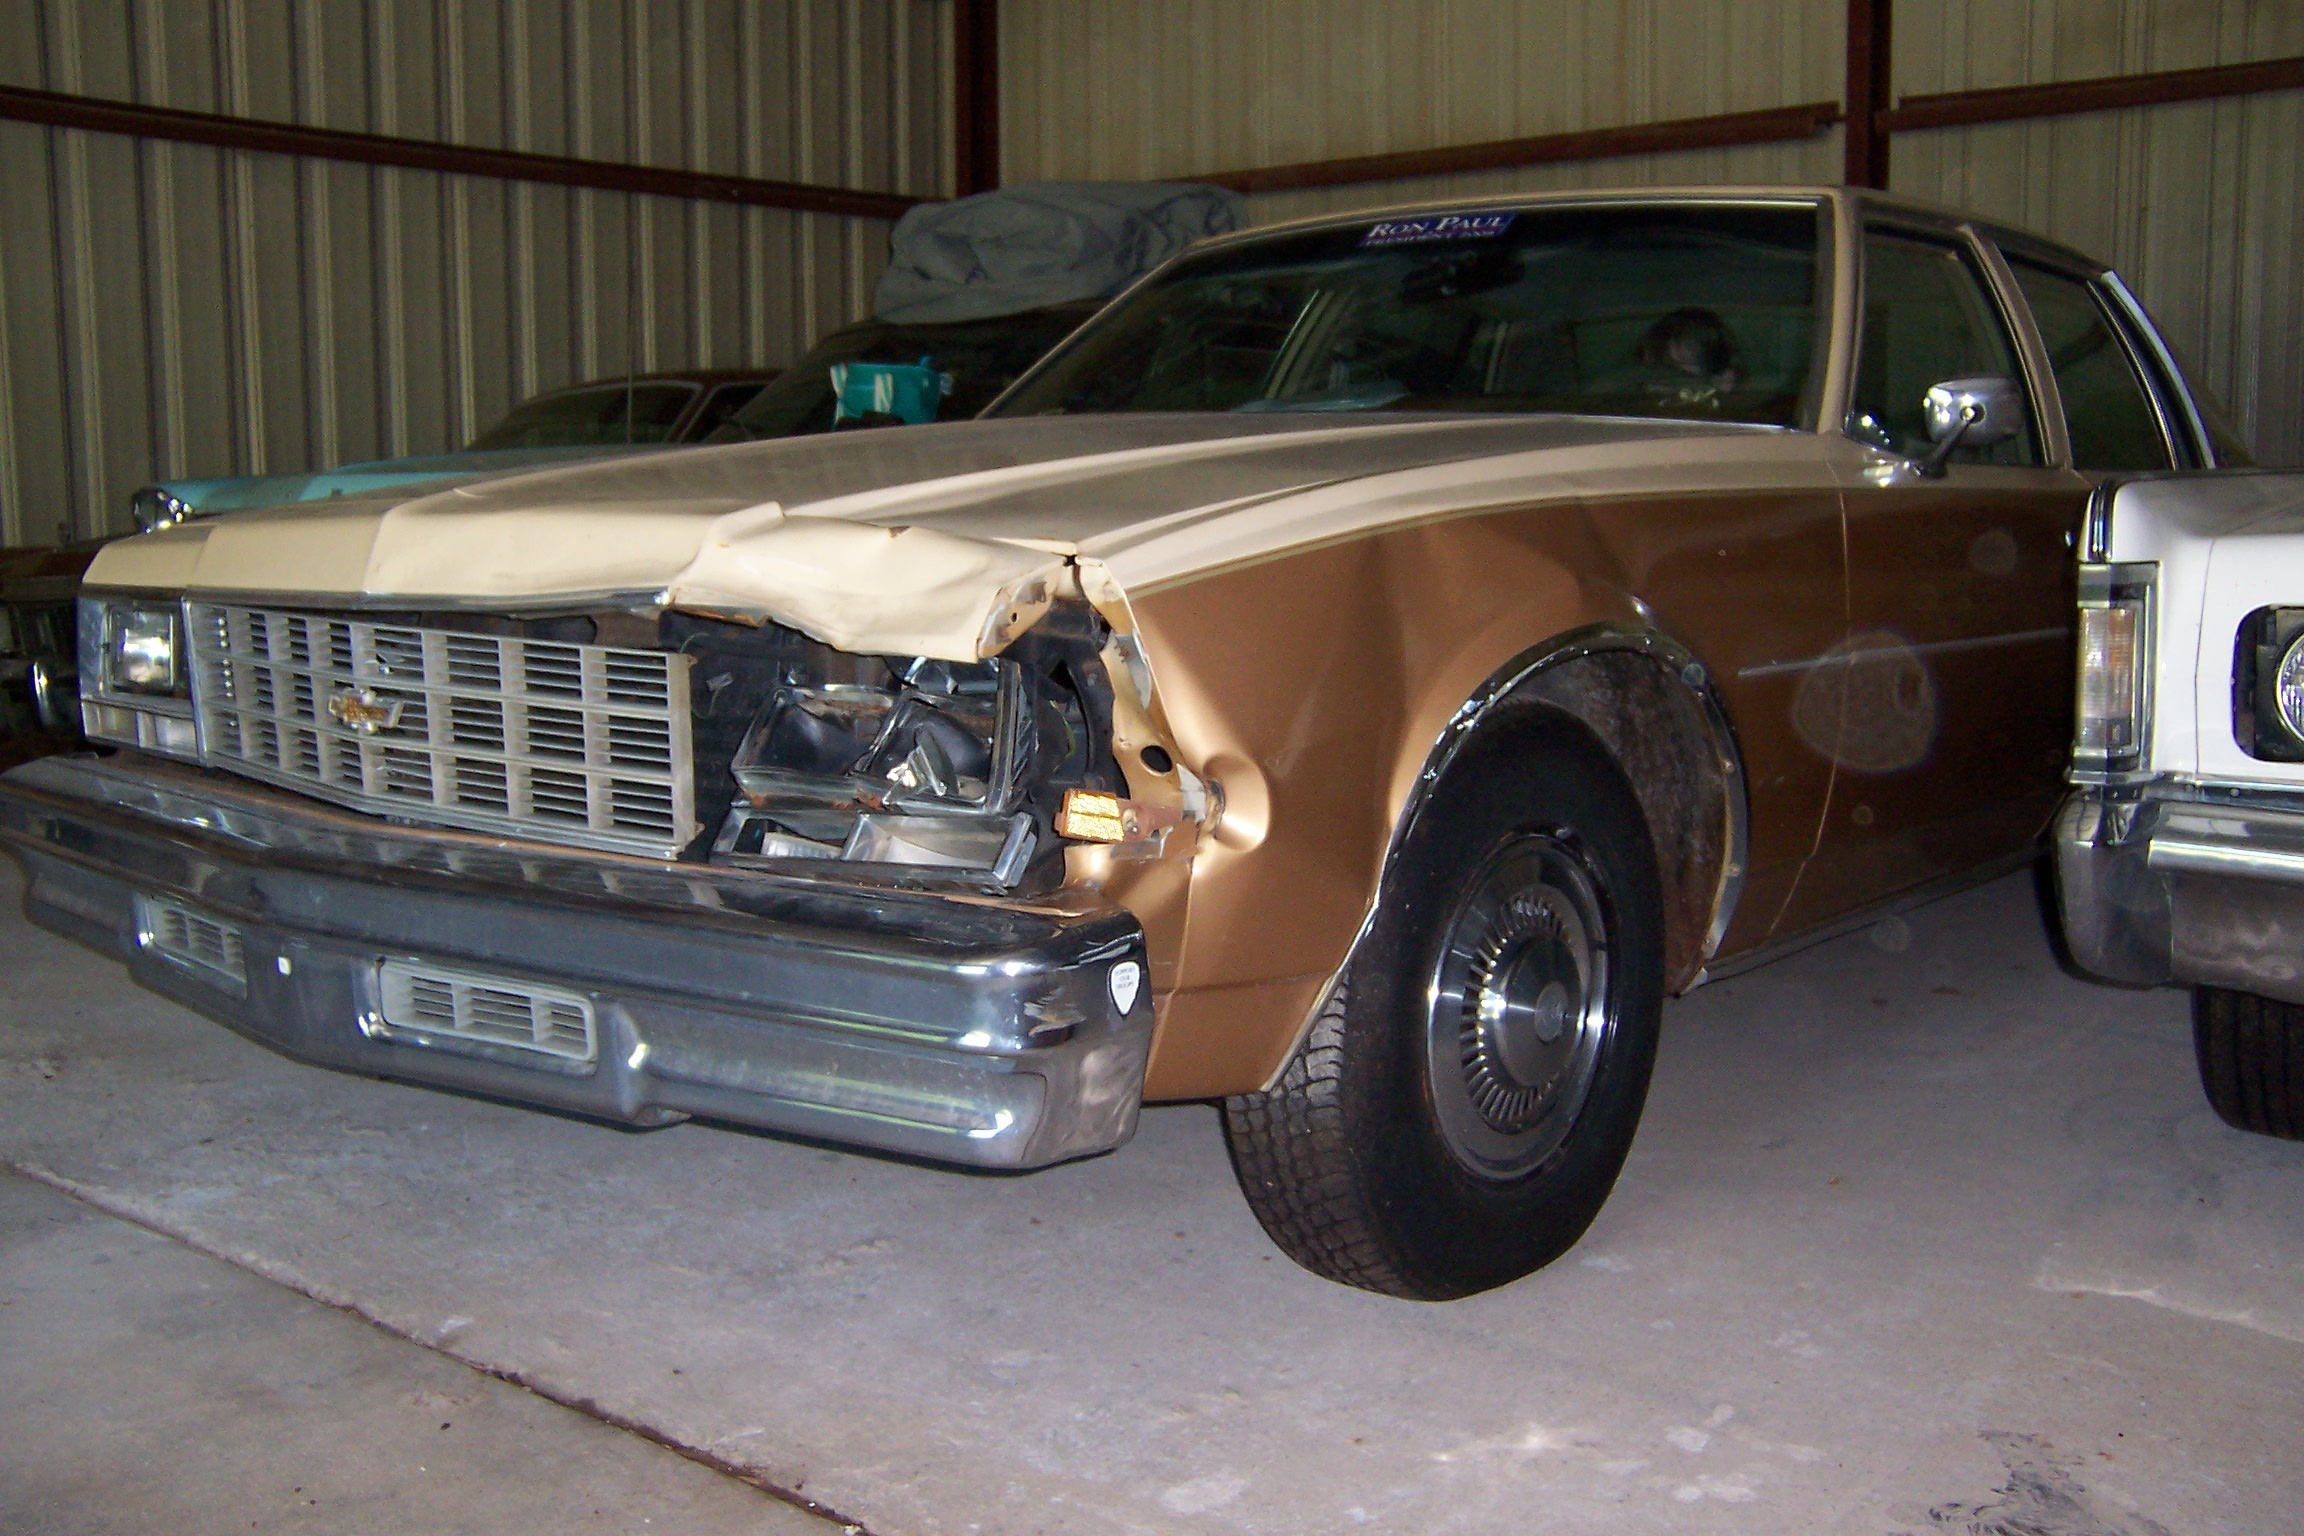 Damaged Chevrolet Impala